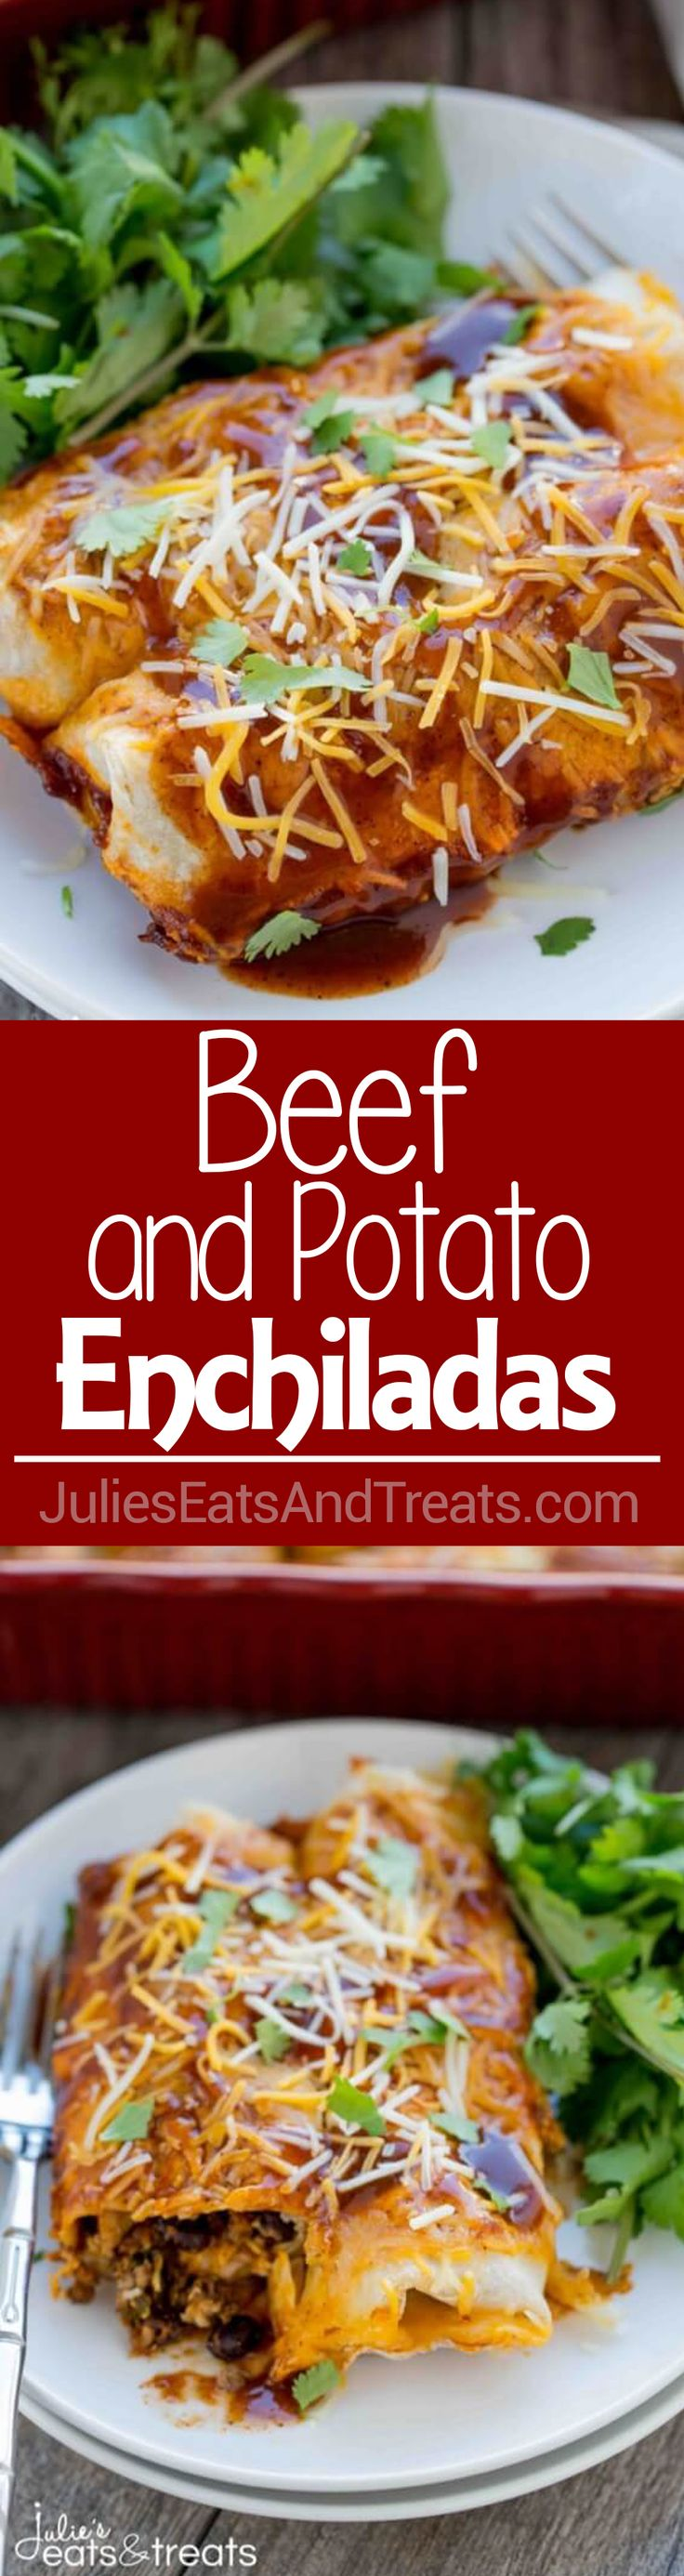 Beef and Potato Enchiladas Recipe ~ Enchiladas loaded with delicious ground beef, crispy potatoes and tender vegetables! The Perfect, Easy Dinner Recipe! on MyRecipeMagic.com